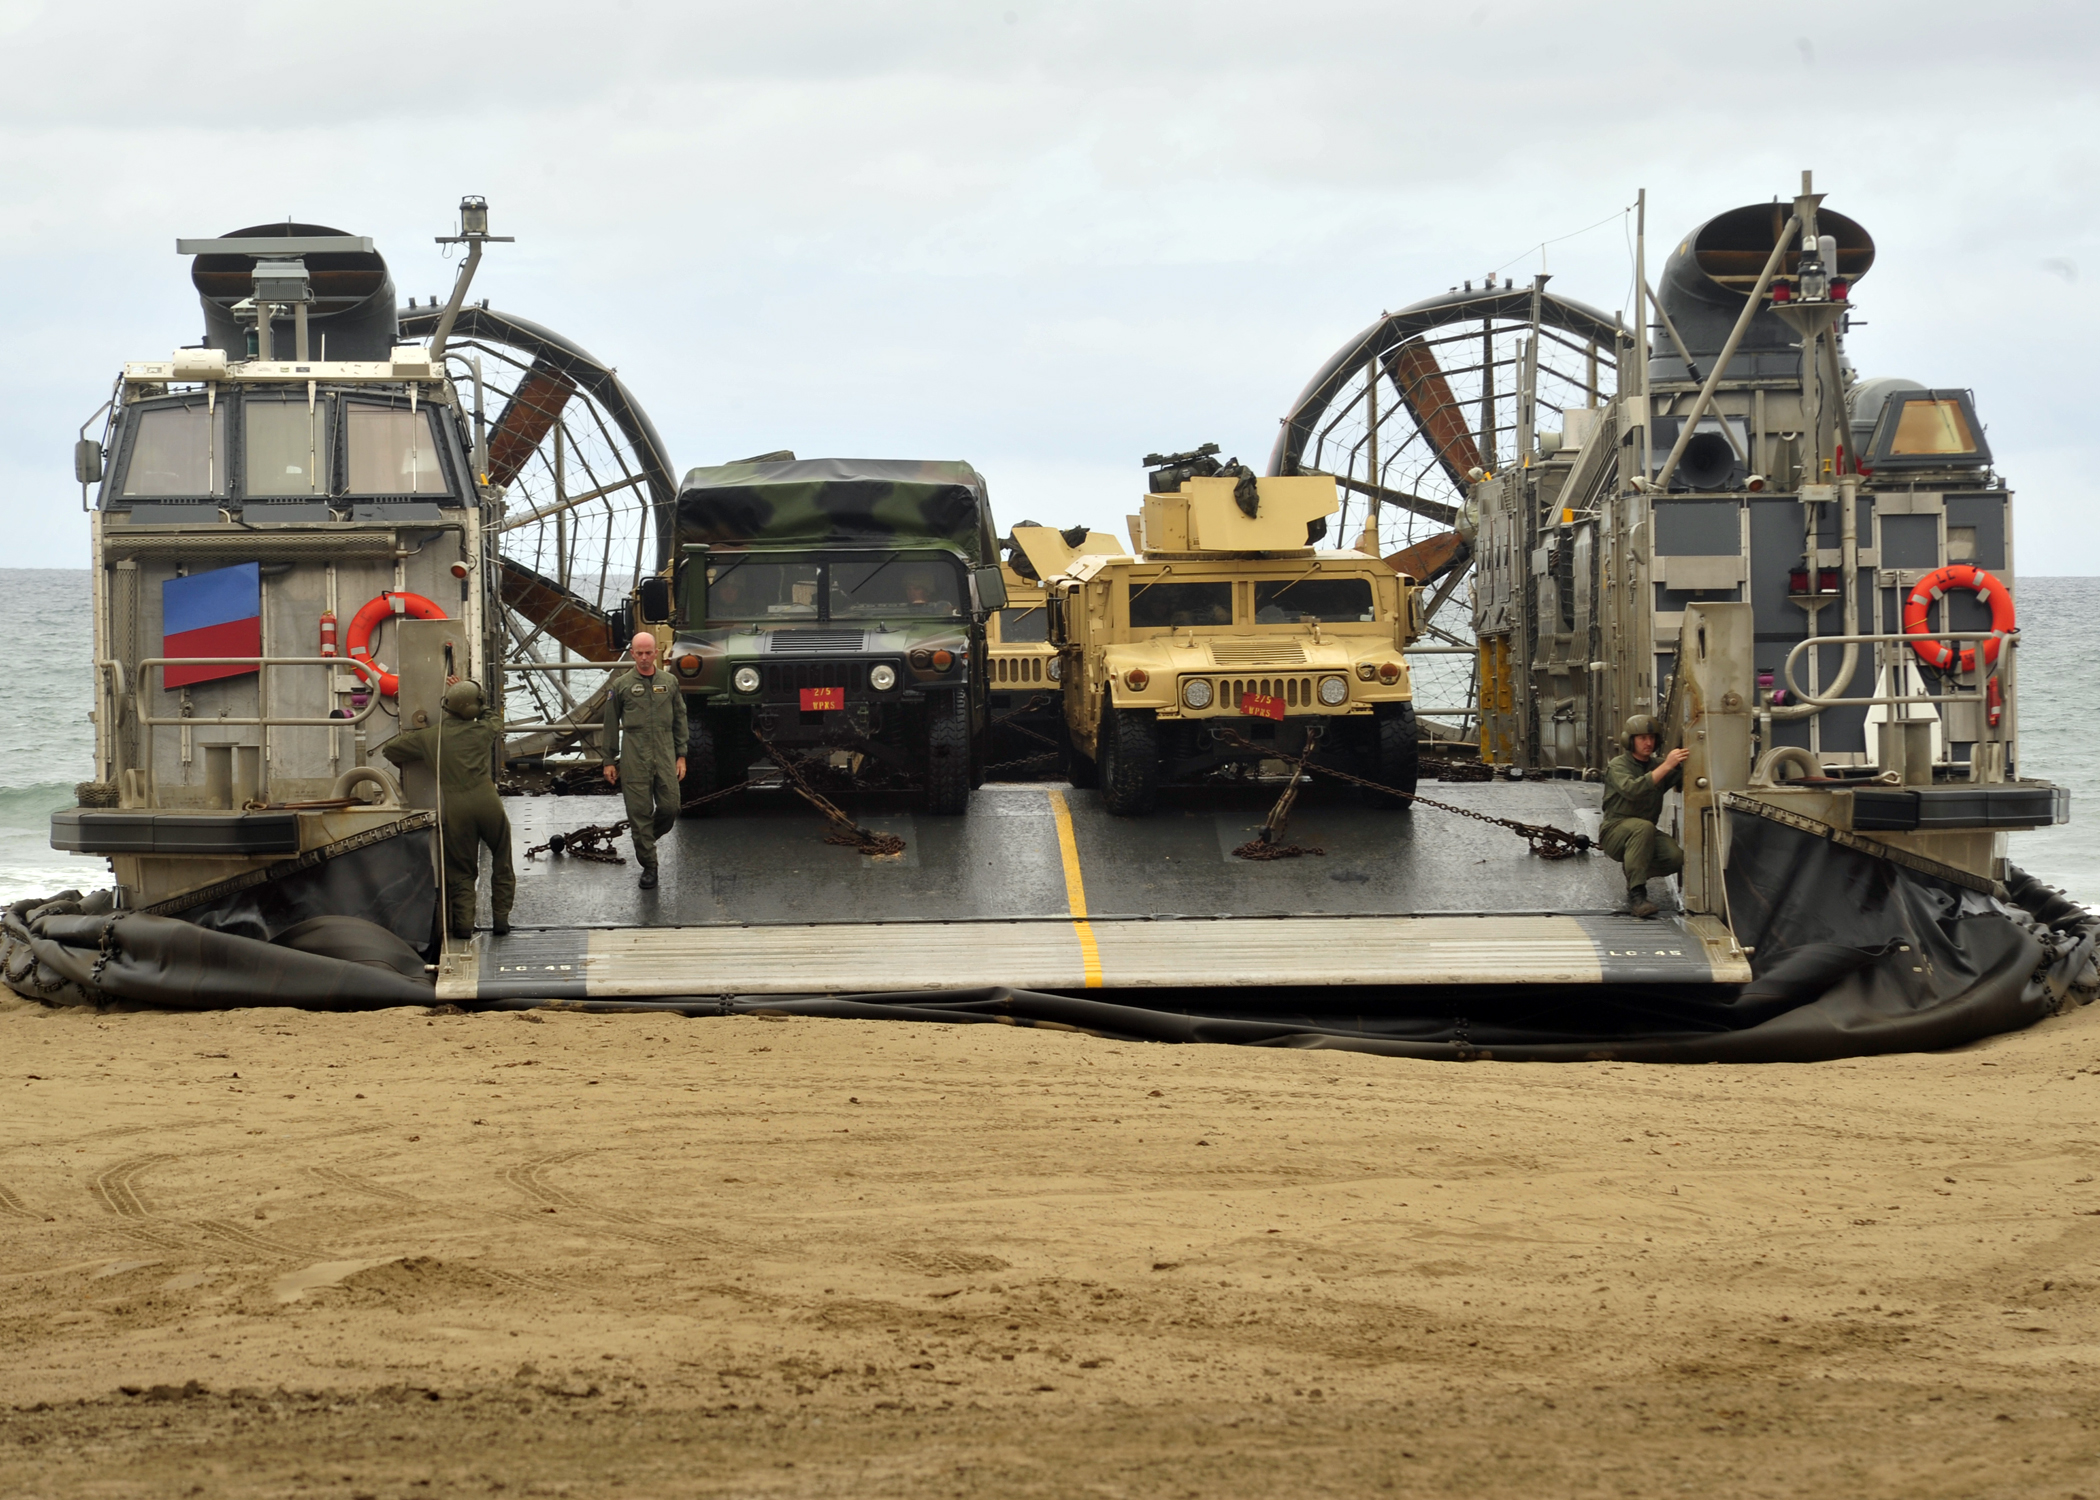 Among the last-minute cuts made in the Fiscal Year 2017 budget request were four service life extension programs for LCACs, above, and 77 Joint Light Tactical Vehicles to replace the Humvee, also above. US Navy photo.